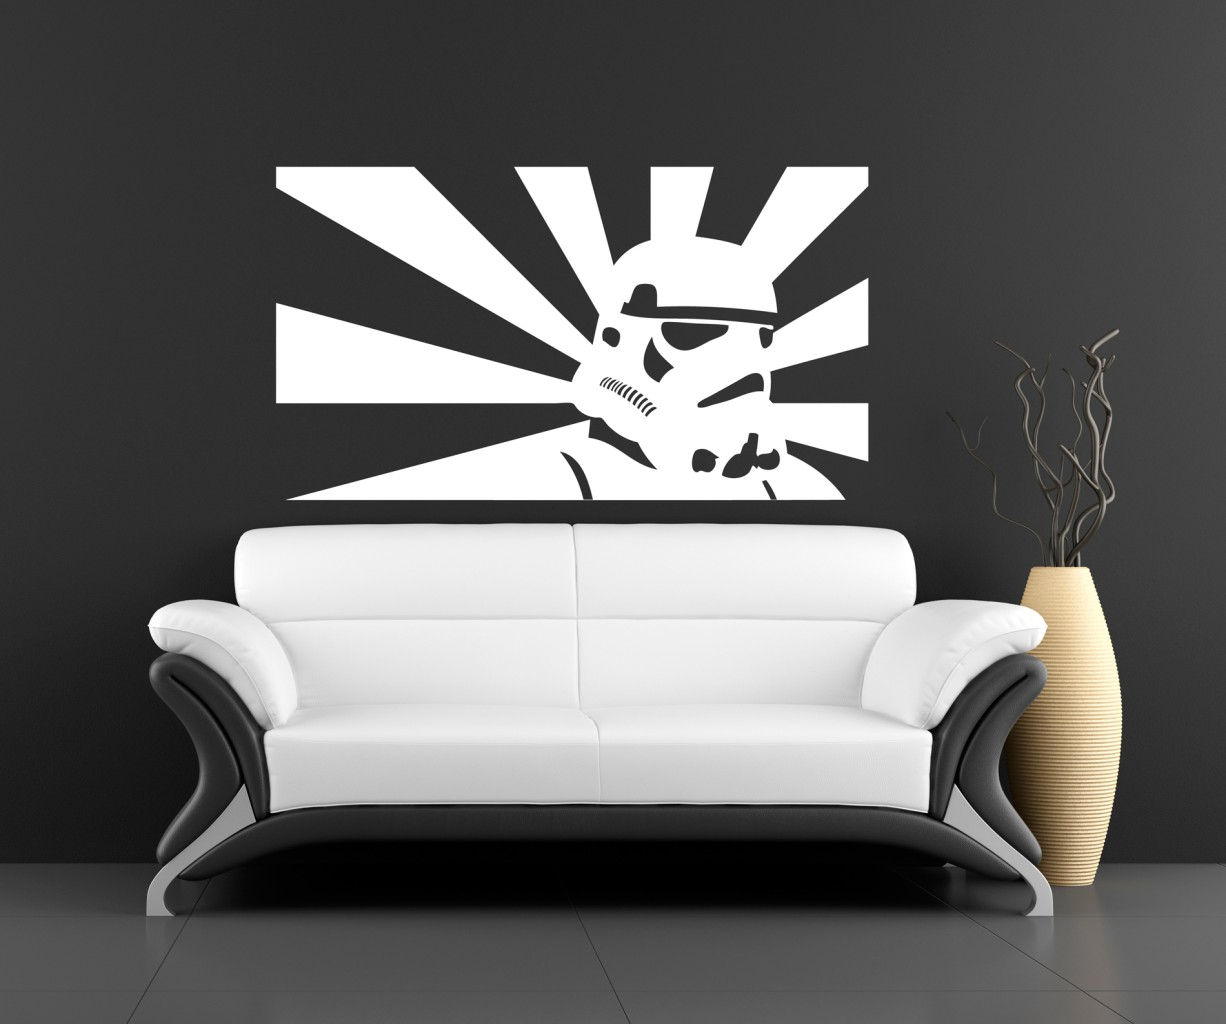 Star Wars Decorating Ideas 45 Best Star Wars Room Ideas For 2016